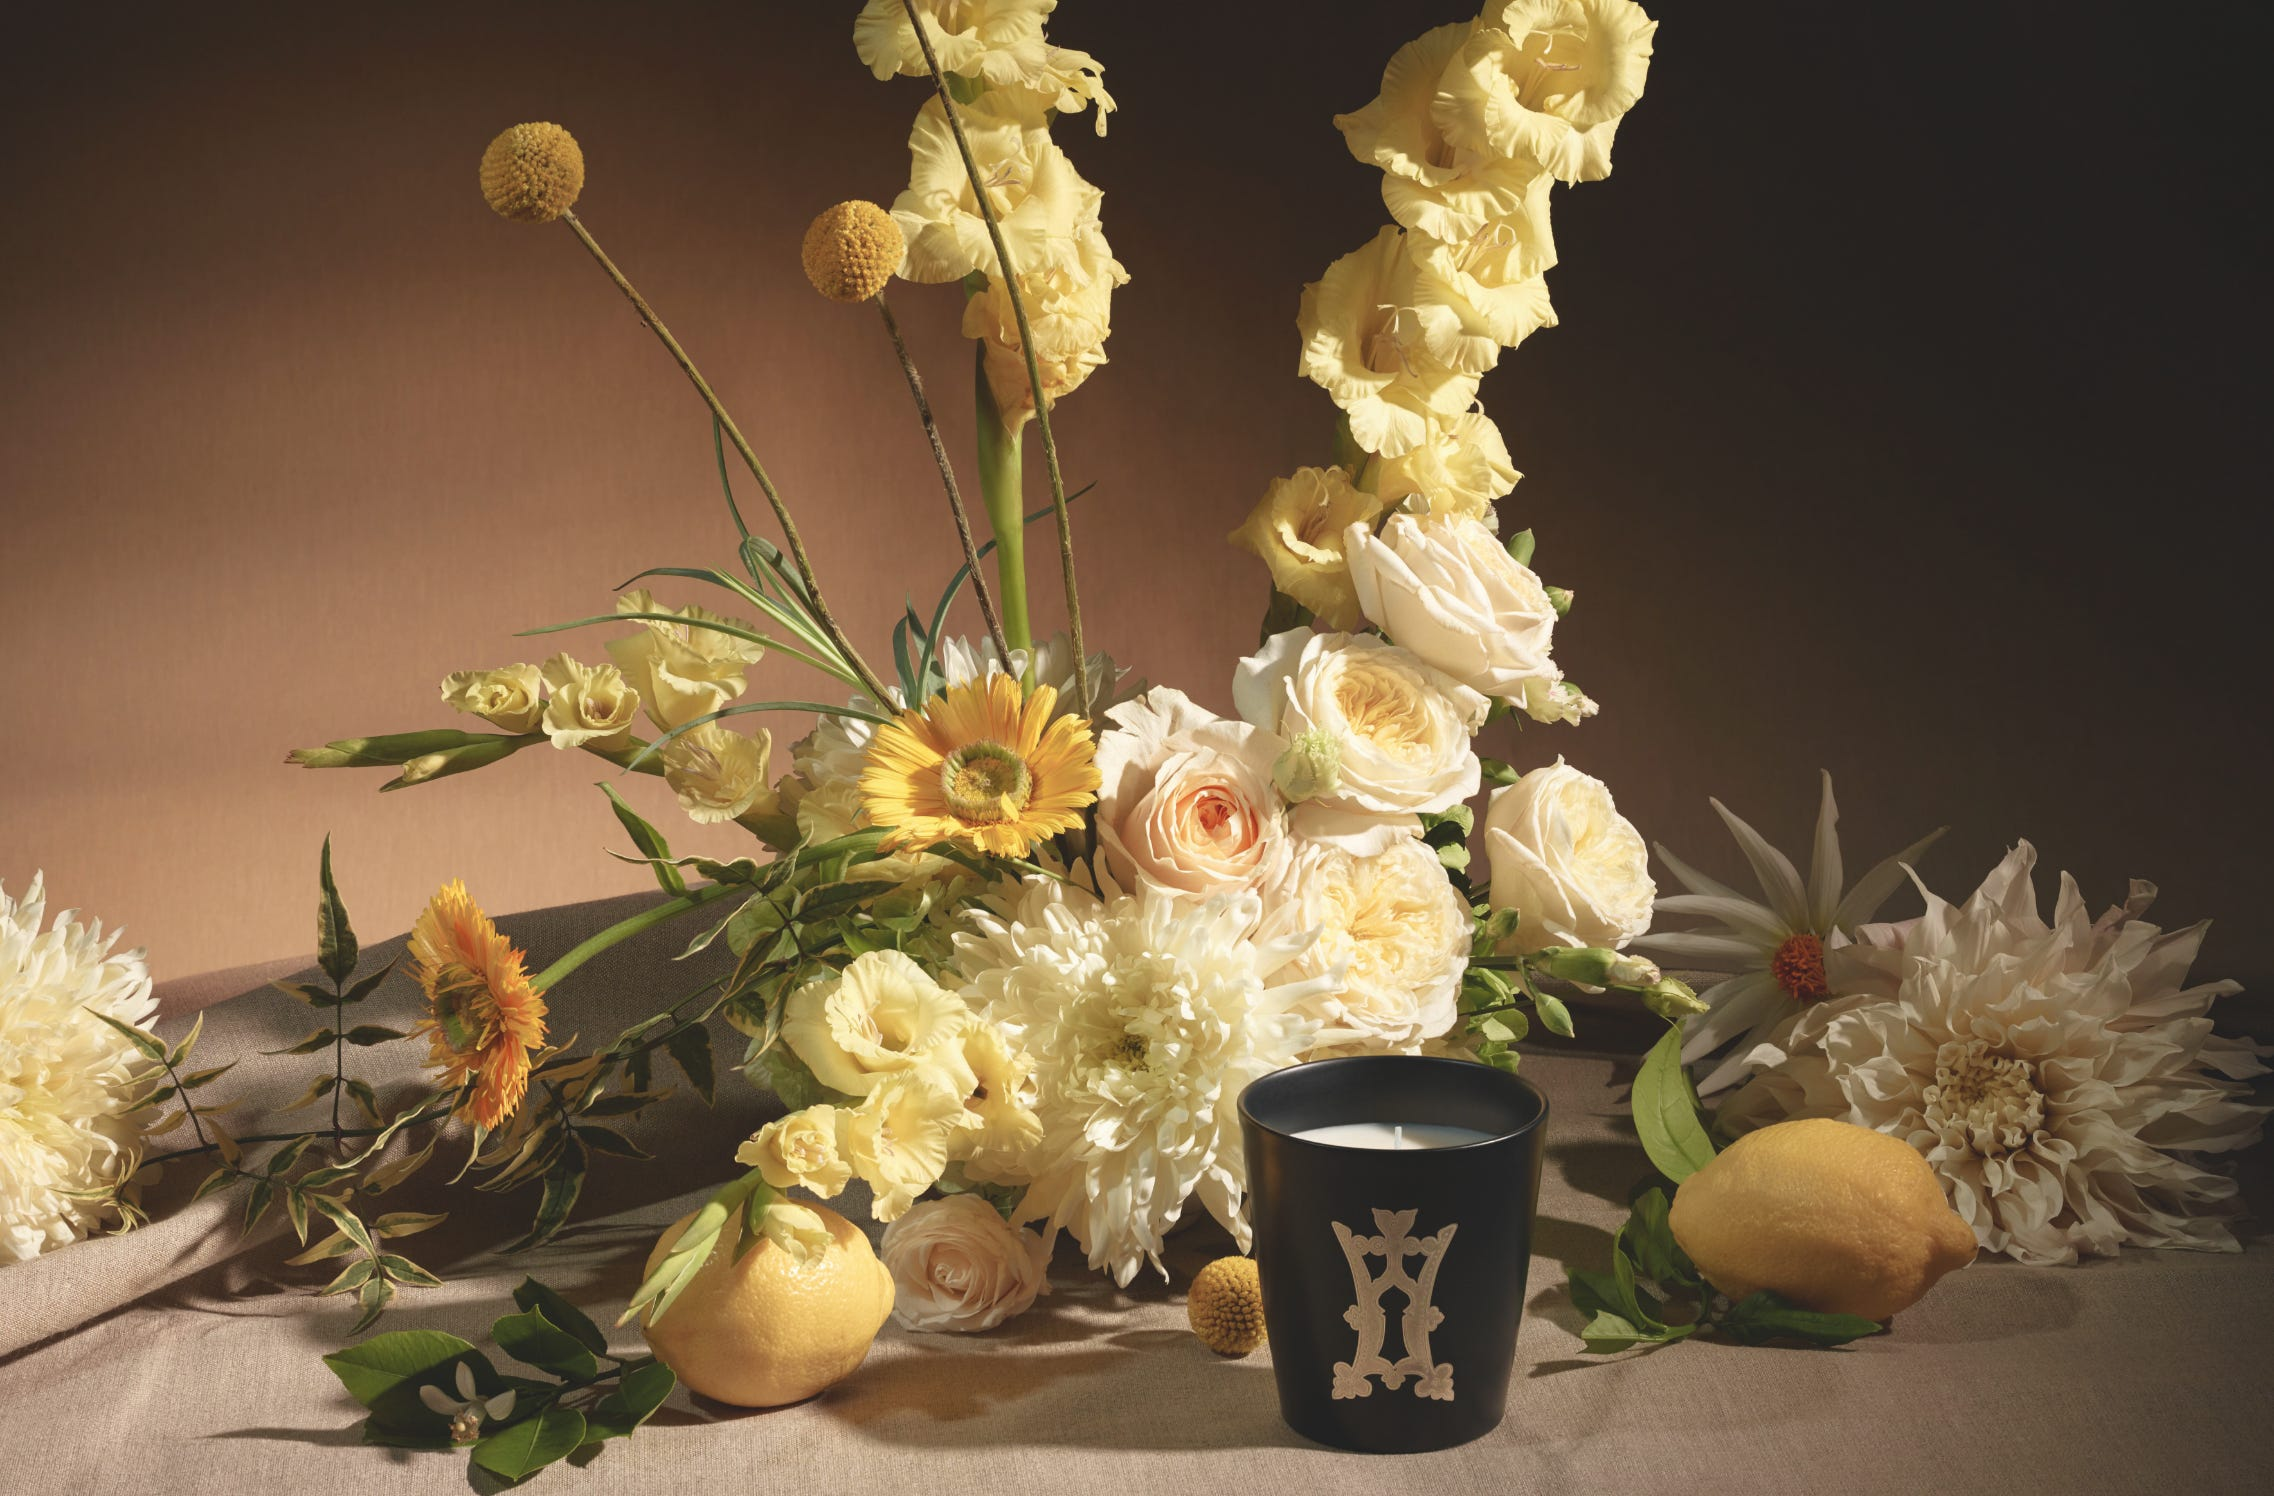 Herbes de Montagne candle in front of a bouquet of yellow and white flowers